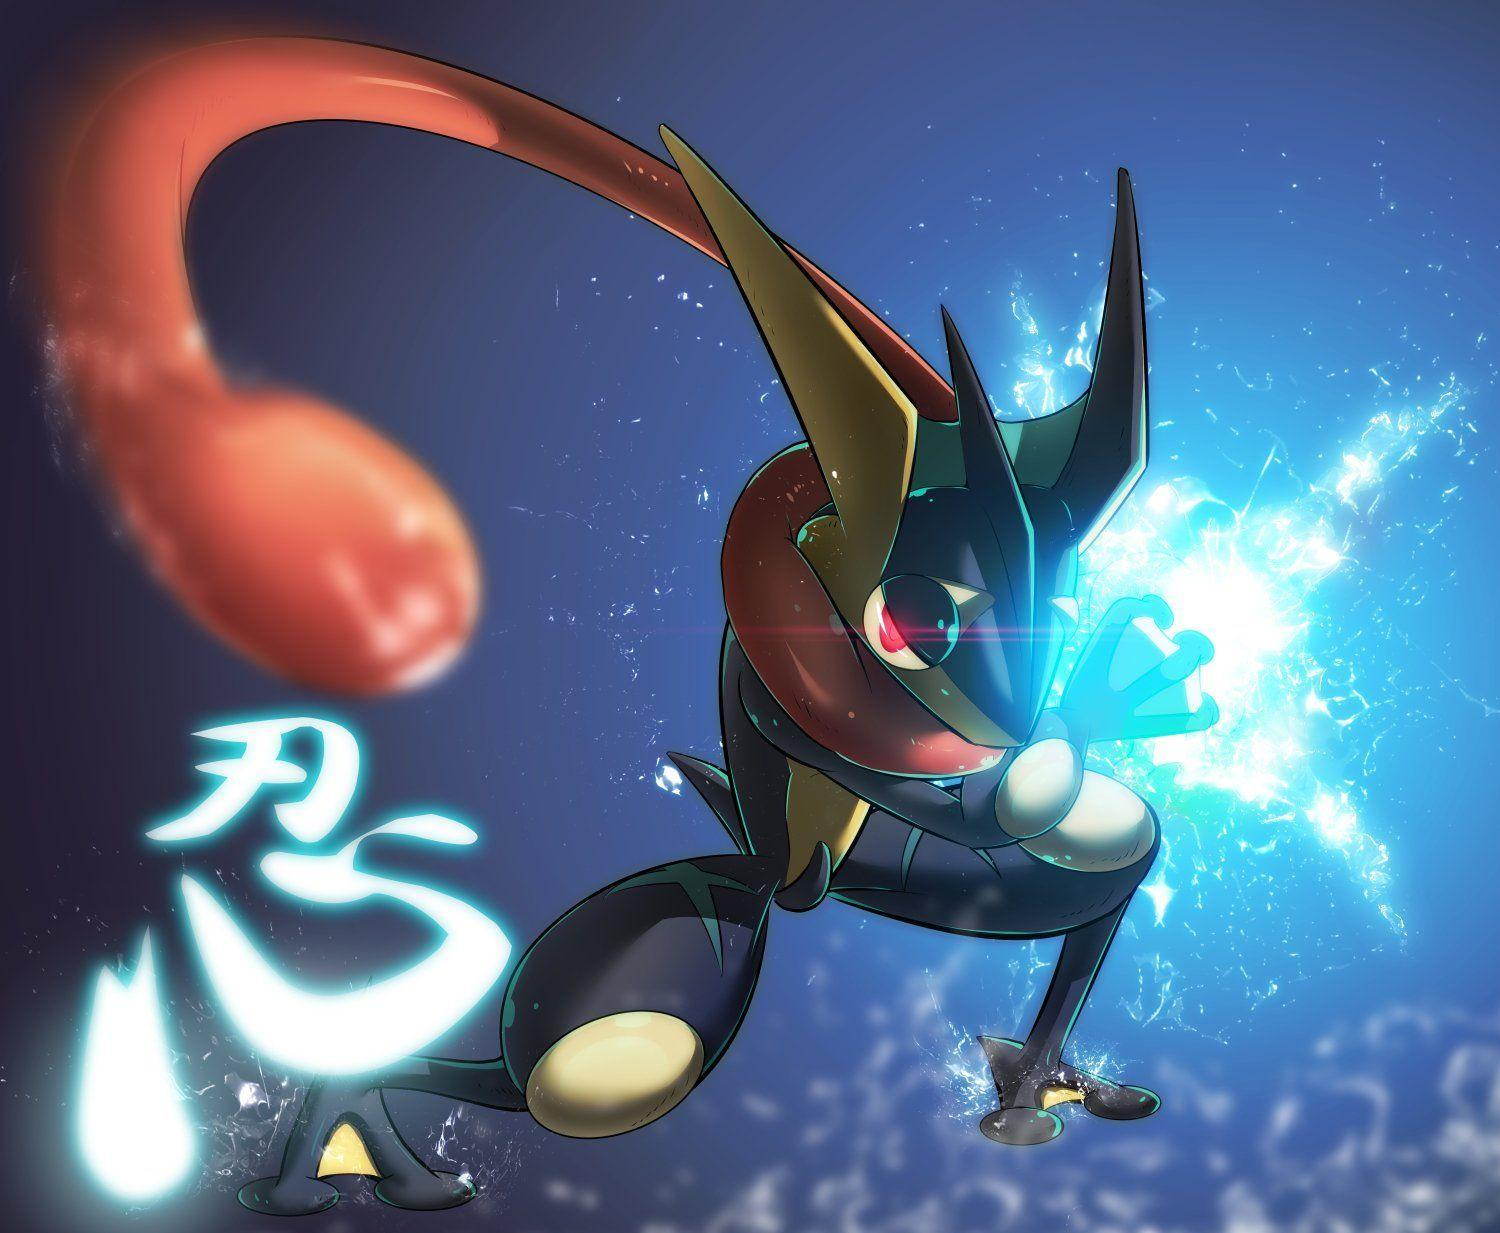 greninja iphone wallpaper - photo #11